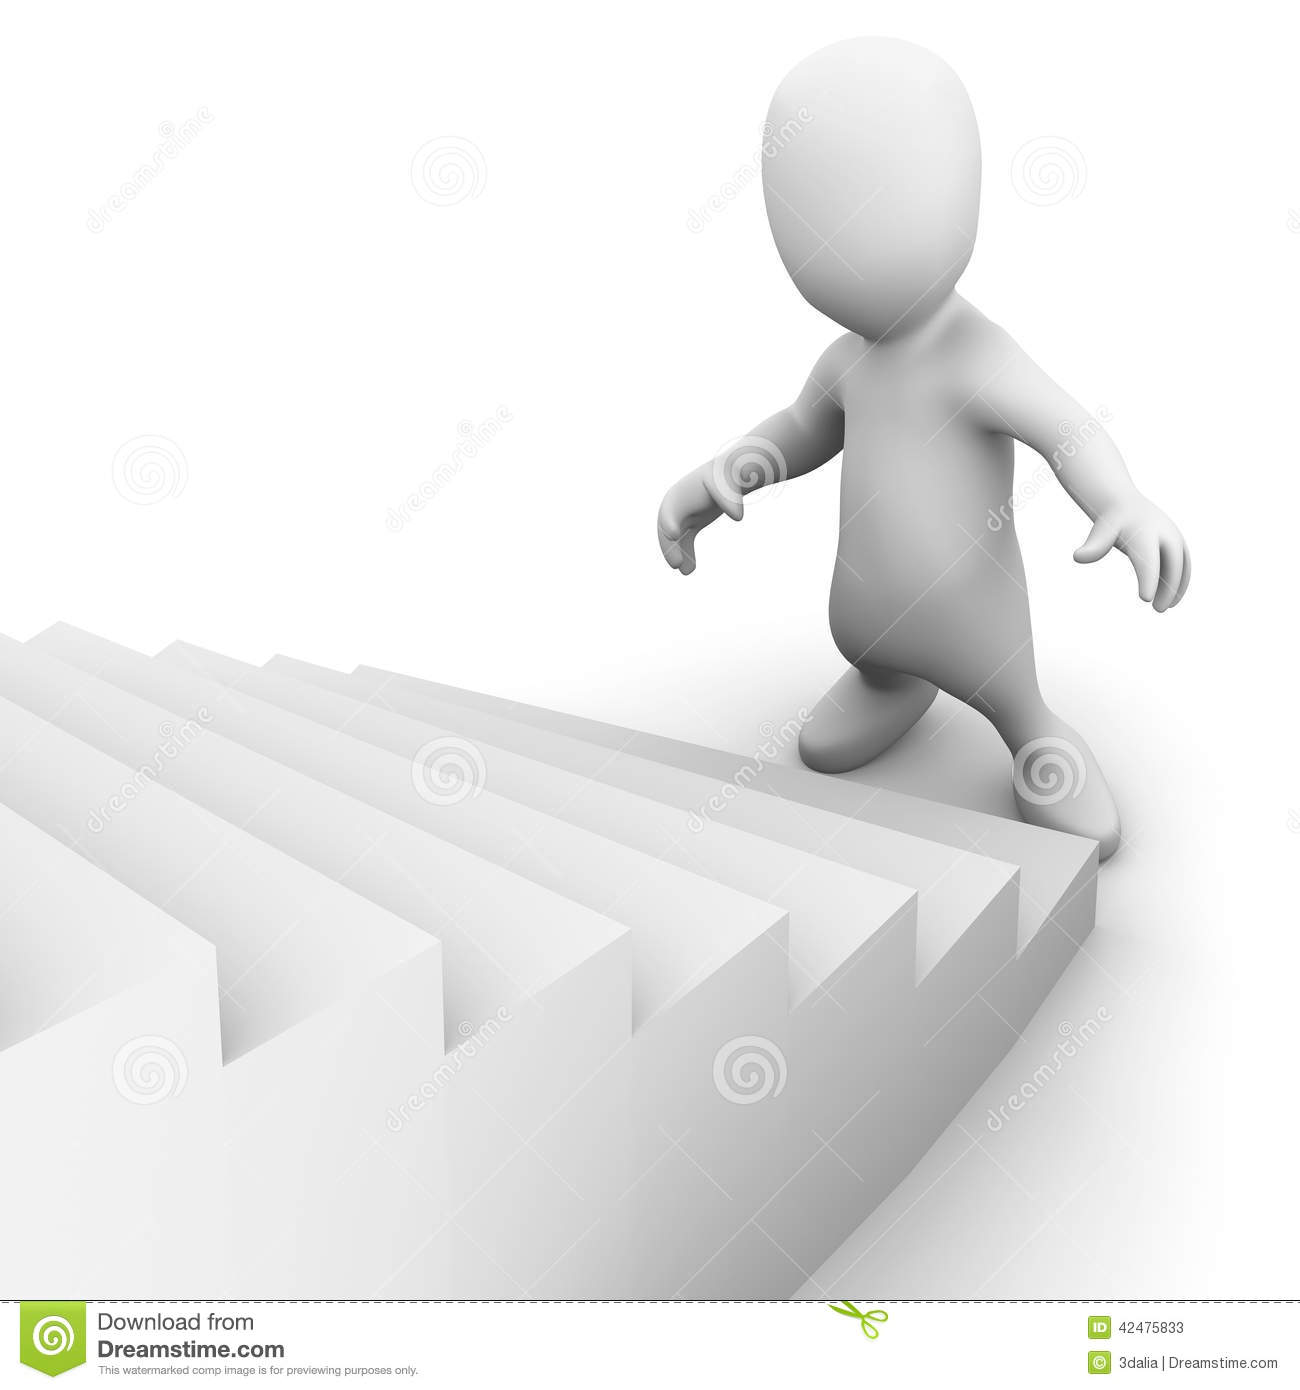 Little Person Diagram Wiring Detailed Stair Anatomy Drawing Elements Parts Illustration 3d Man Looks Up The Stairs Stock Top View